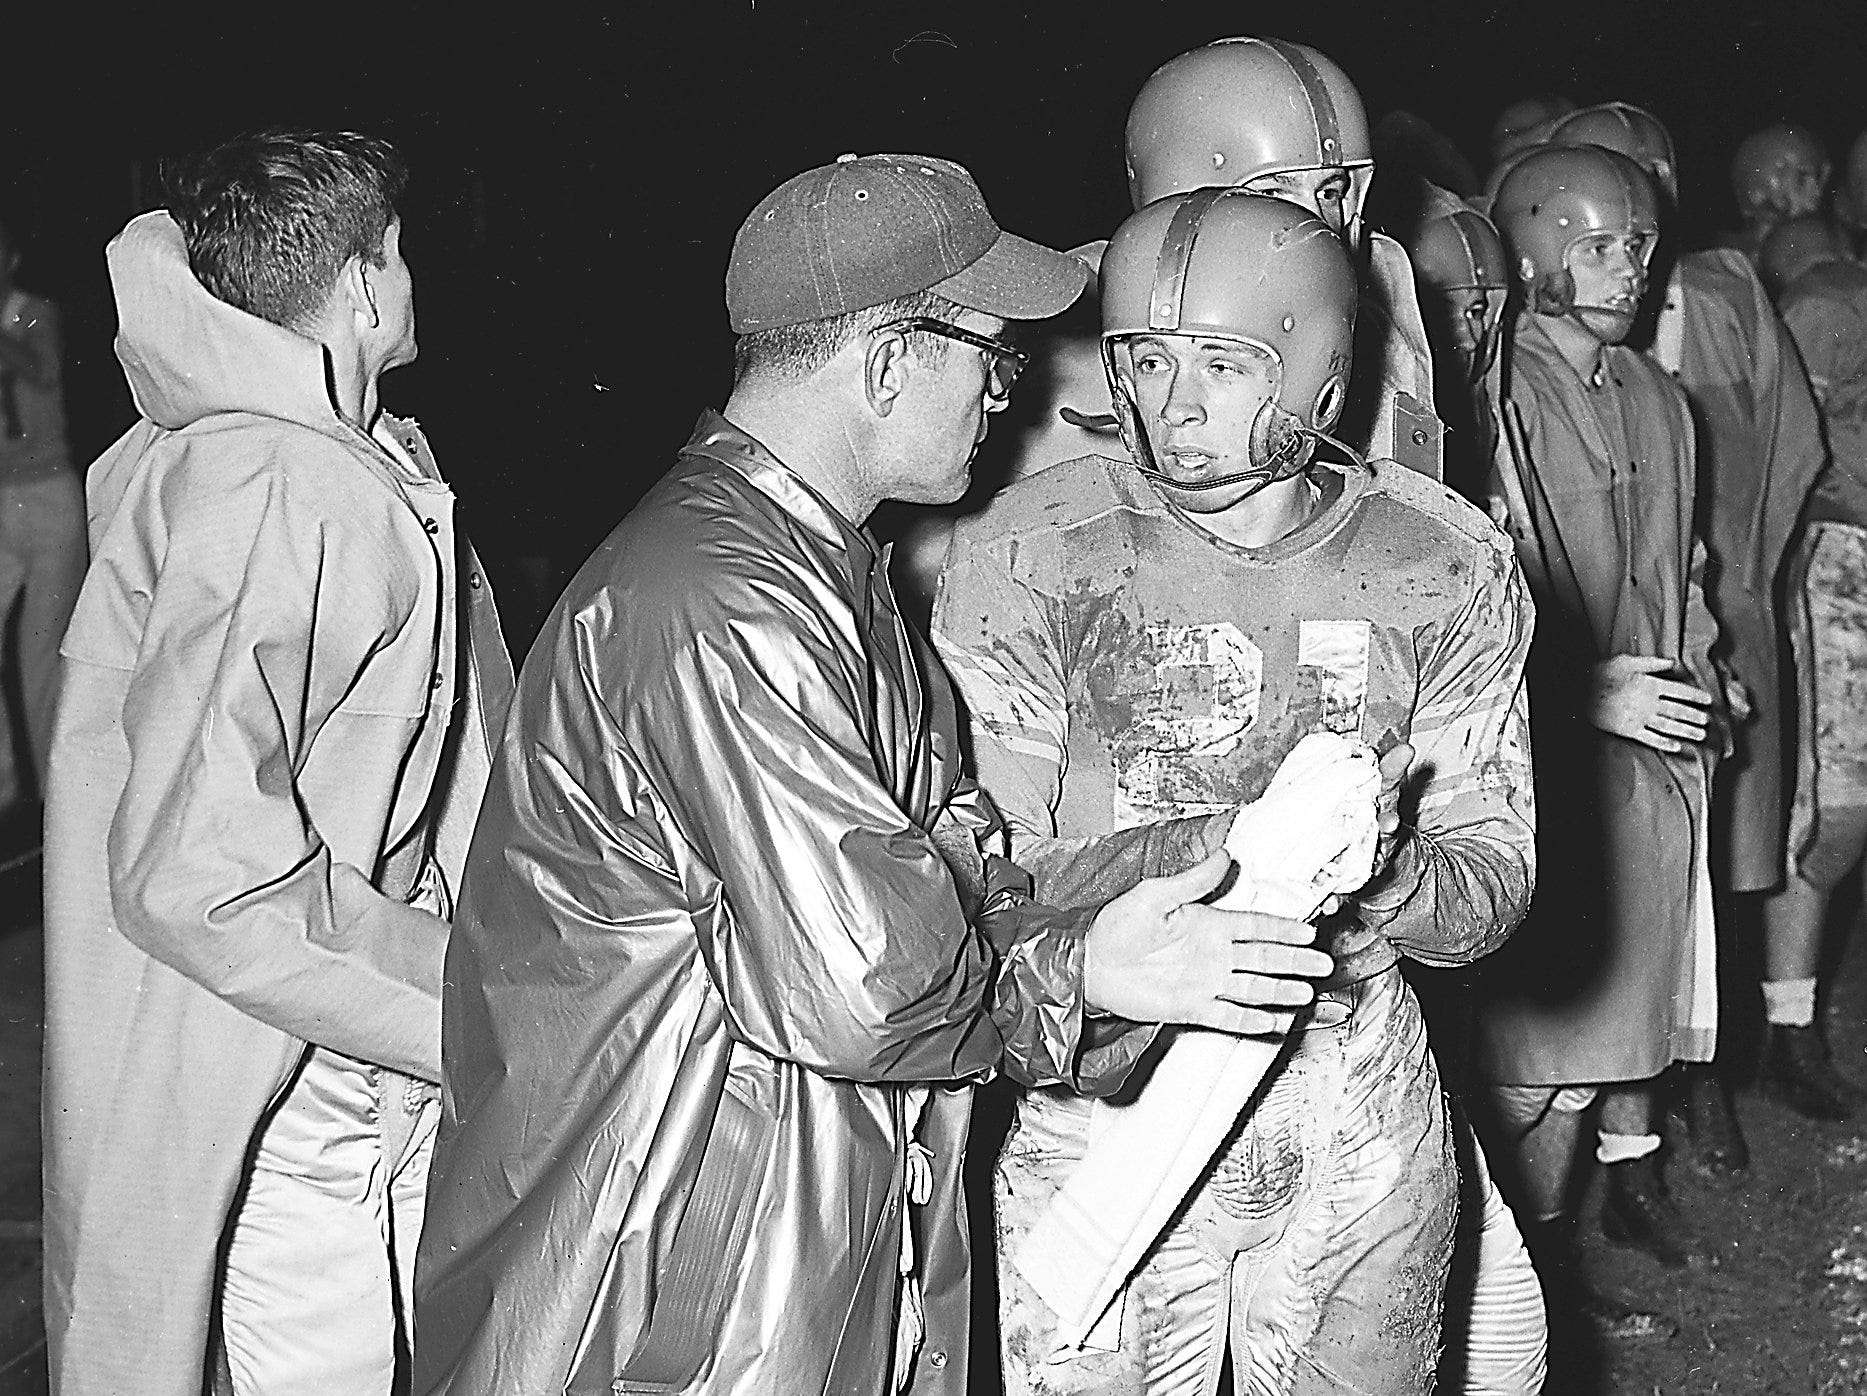 A TD talk is held between Humes coach Rube Boyce and halfback George Blancett.  Blancett had just scored Humes' first touchdown on a 33 yard run.  Humes went on to whip East High 50 - 0 at Hodges Field on 23 Oct 1951.